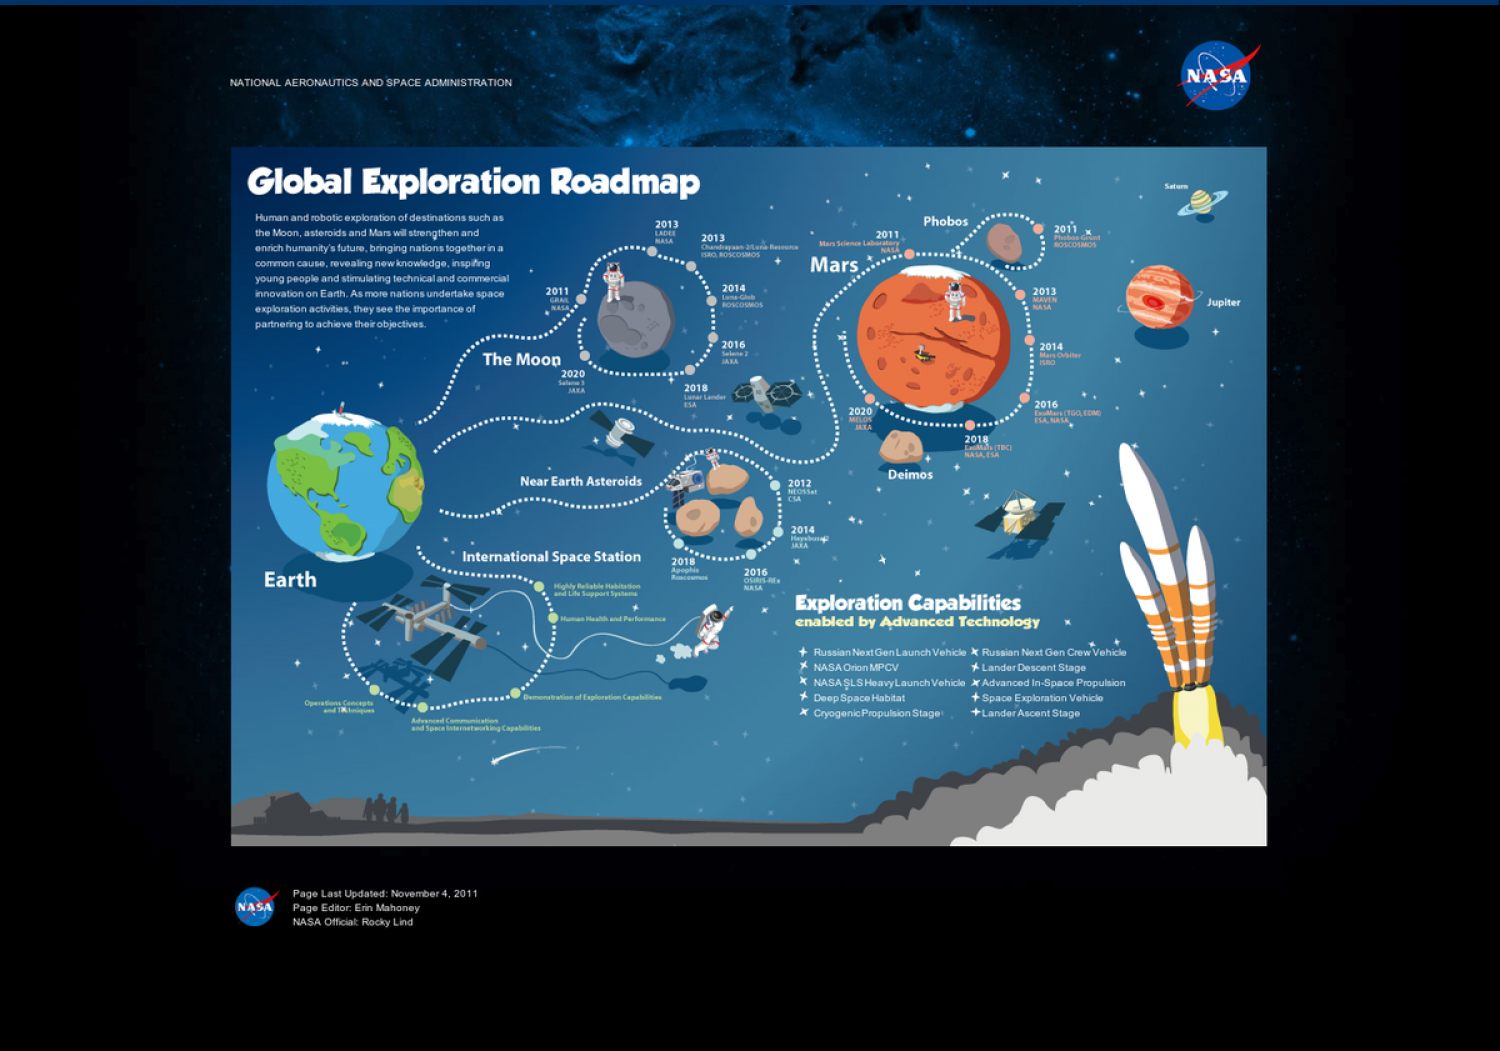 The Global Exploration Roadmap Infographic